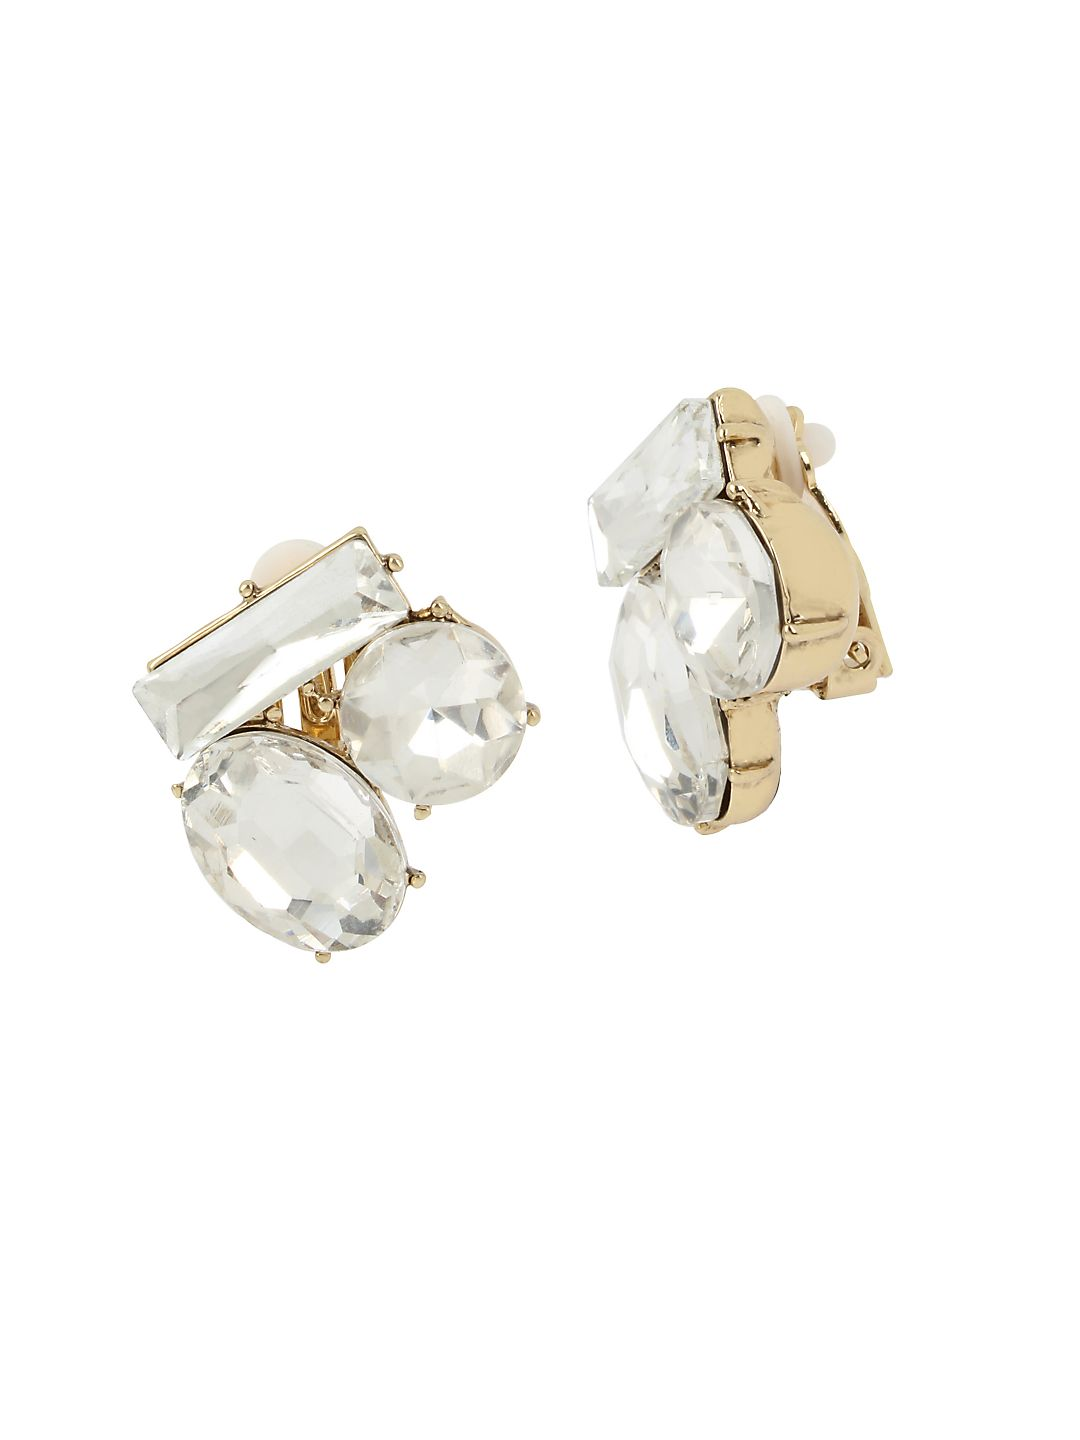 Vintage Floral Crystal Stone Cluster Clip-on Earrings